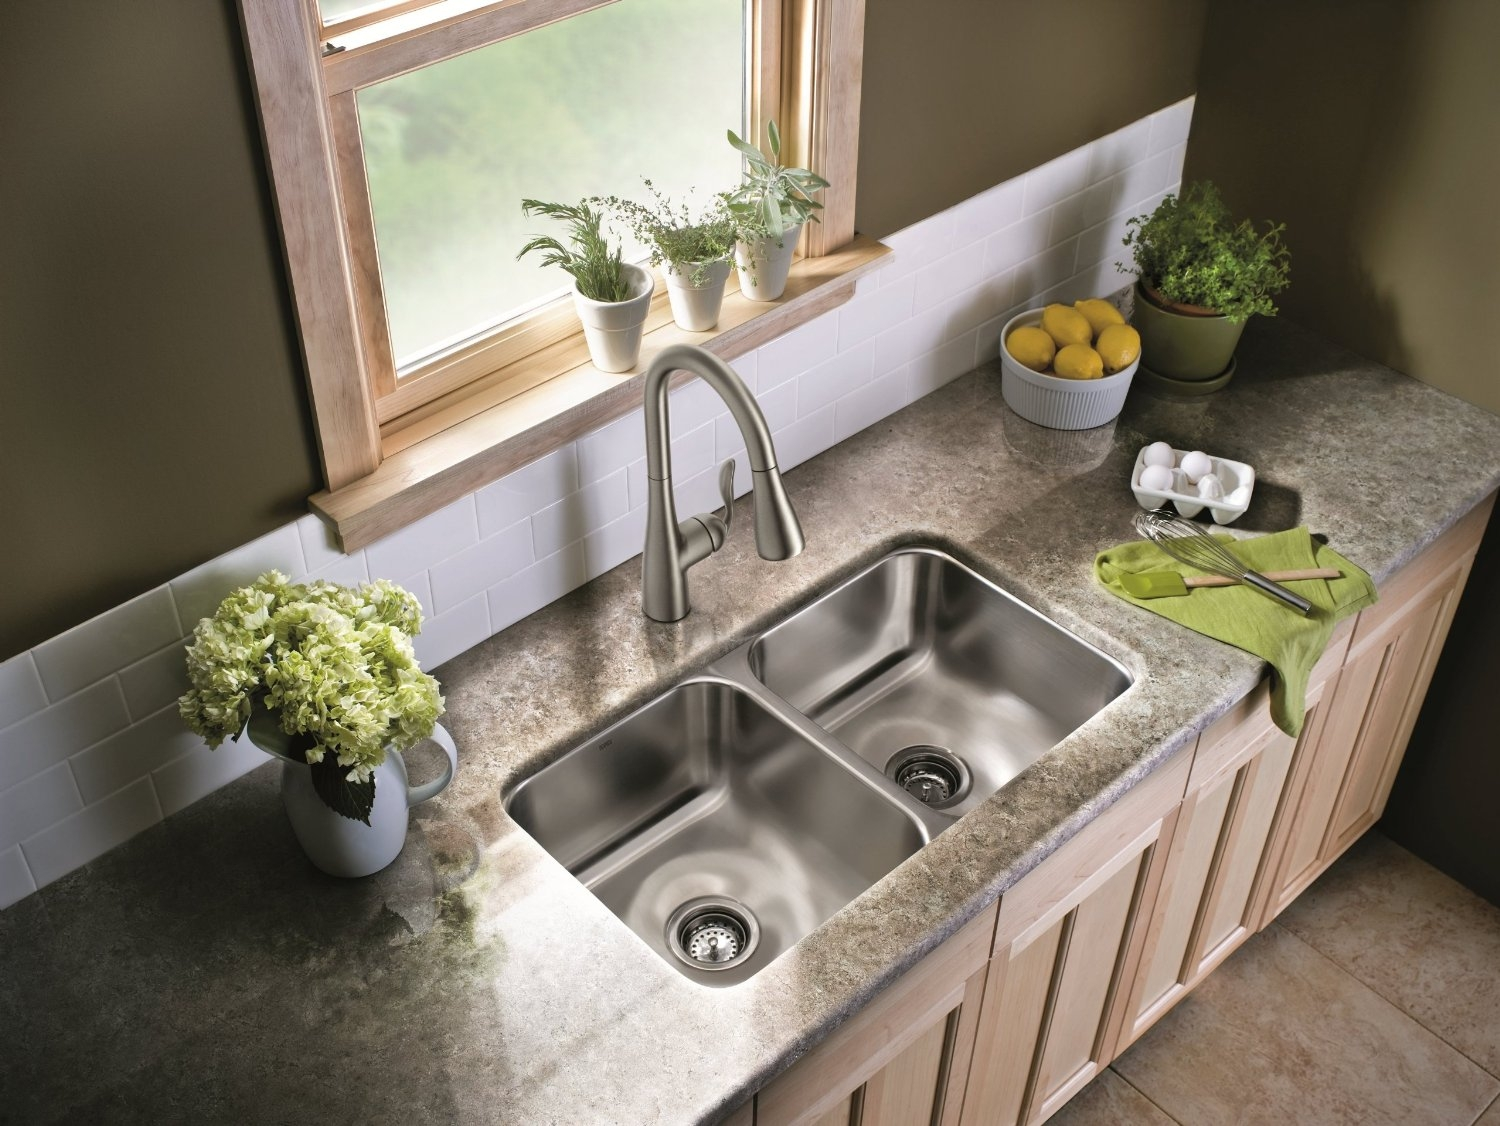 Ideas, best kitchen faucet for undermount sink best kitchen faucet for undermount sink sink options kitchen sinks and faucets modern kitchen faucets 1500 x 1126  .